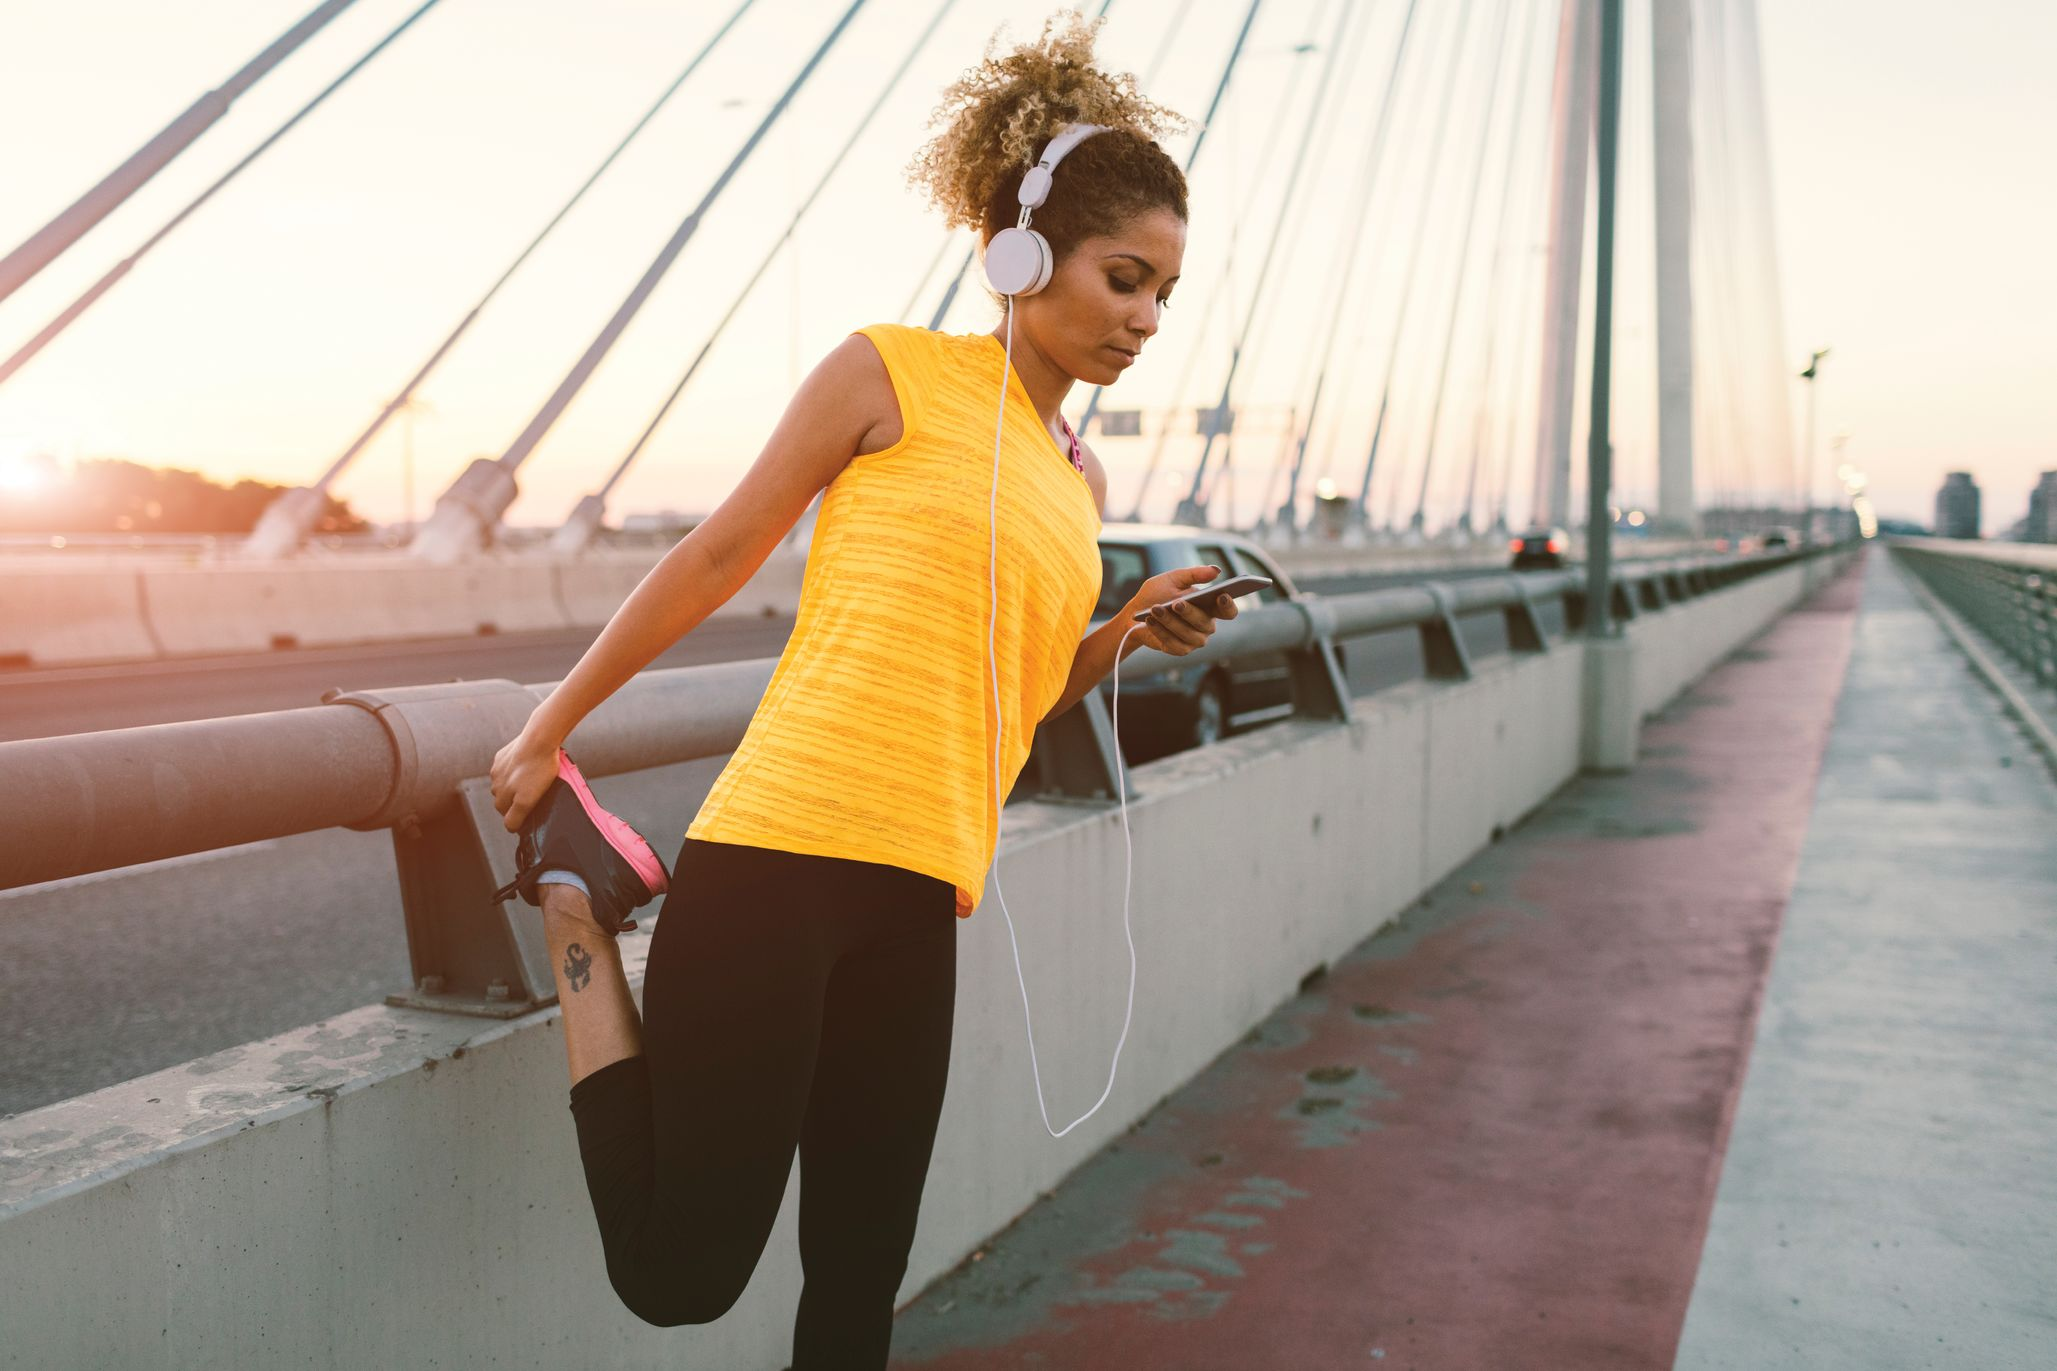 A 20 year old woman with curly hair is wearing a yellow tank top, black leggings and sneakers. She has a music device in her hand with earbuds connected to it and in her ears. She is stretching her quads in the running lane of a bridge.